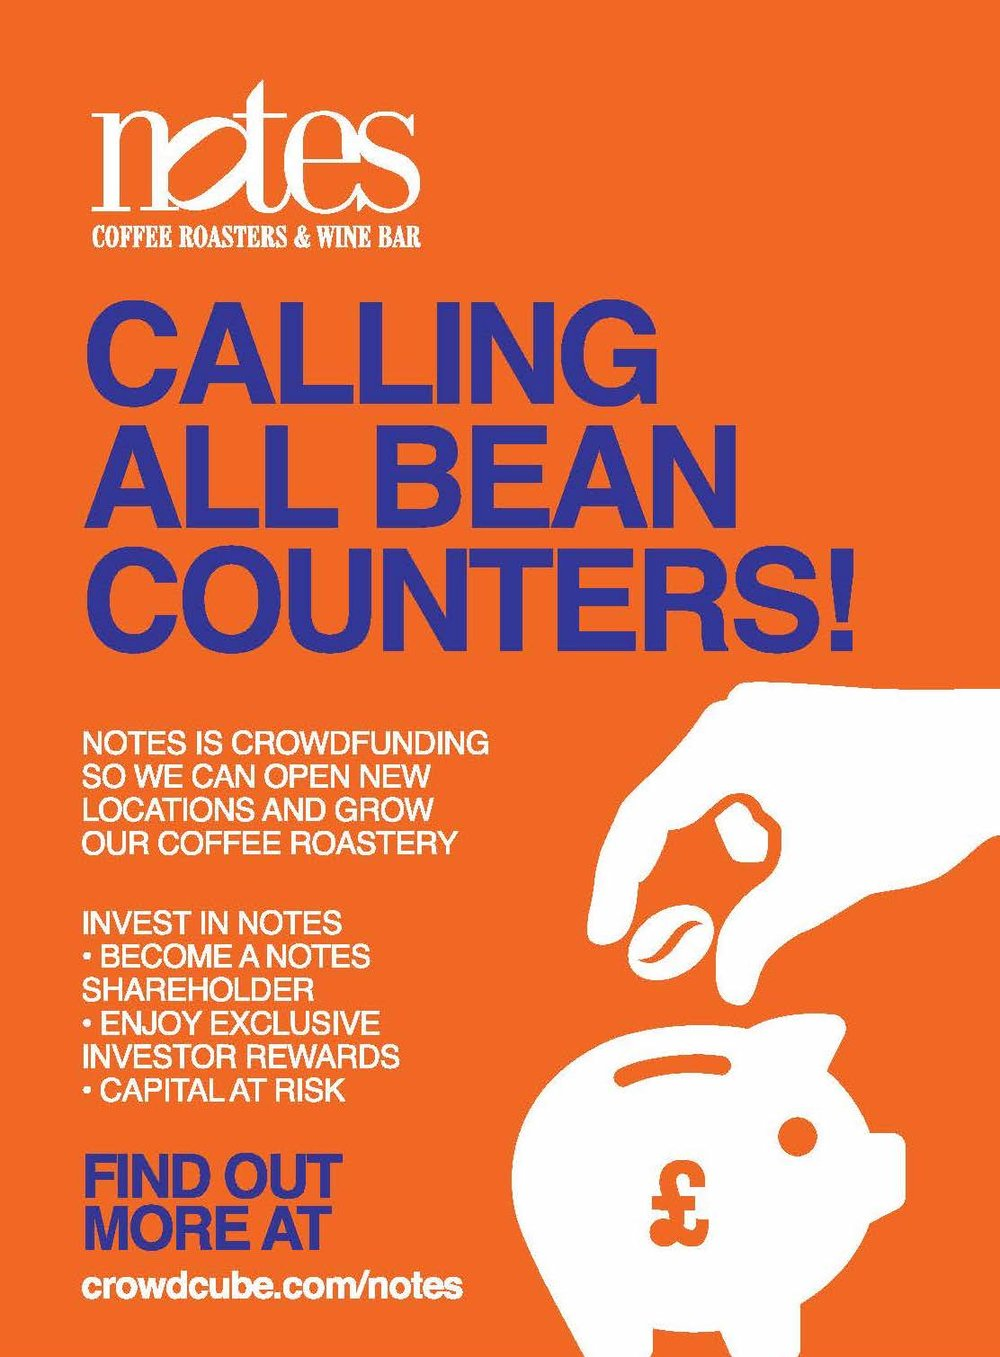 Crowdcube Bean counters flyer 02_A_Page_1.jpg